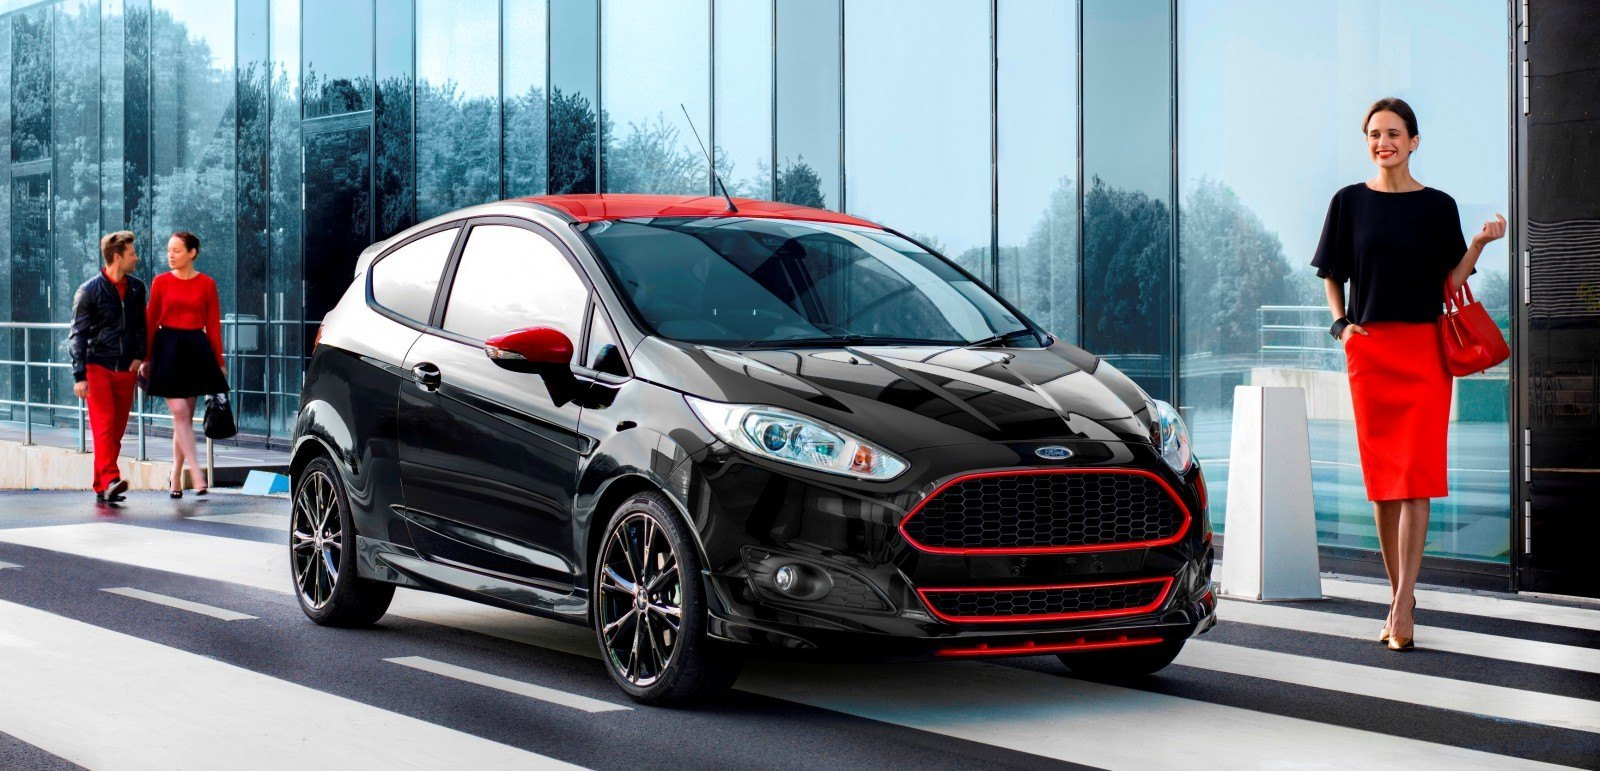 2014 Ford Fiesta Red Edition and Fiesta Black Edition Announced for UK 7